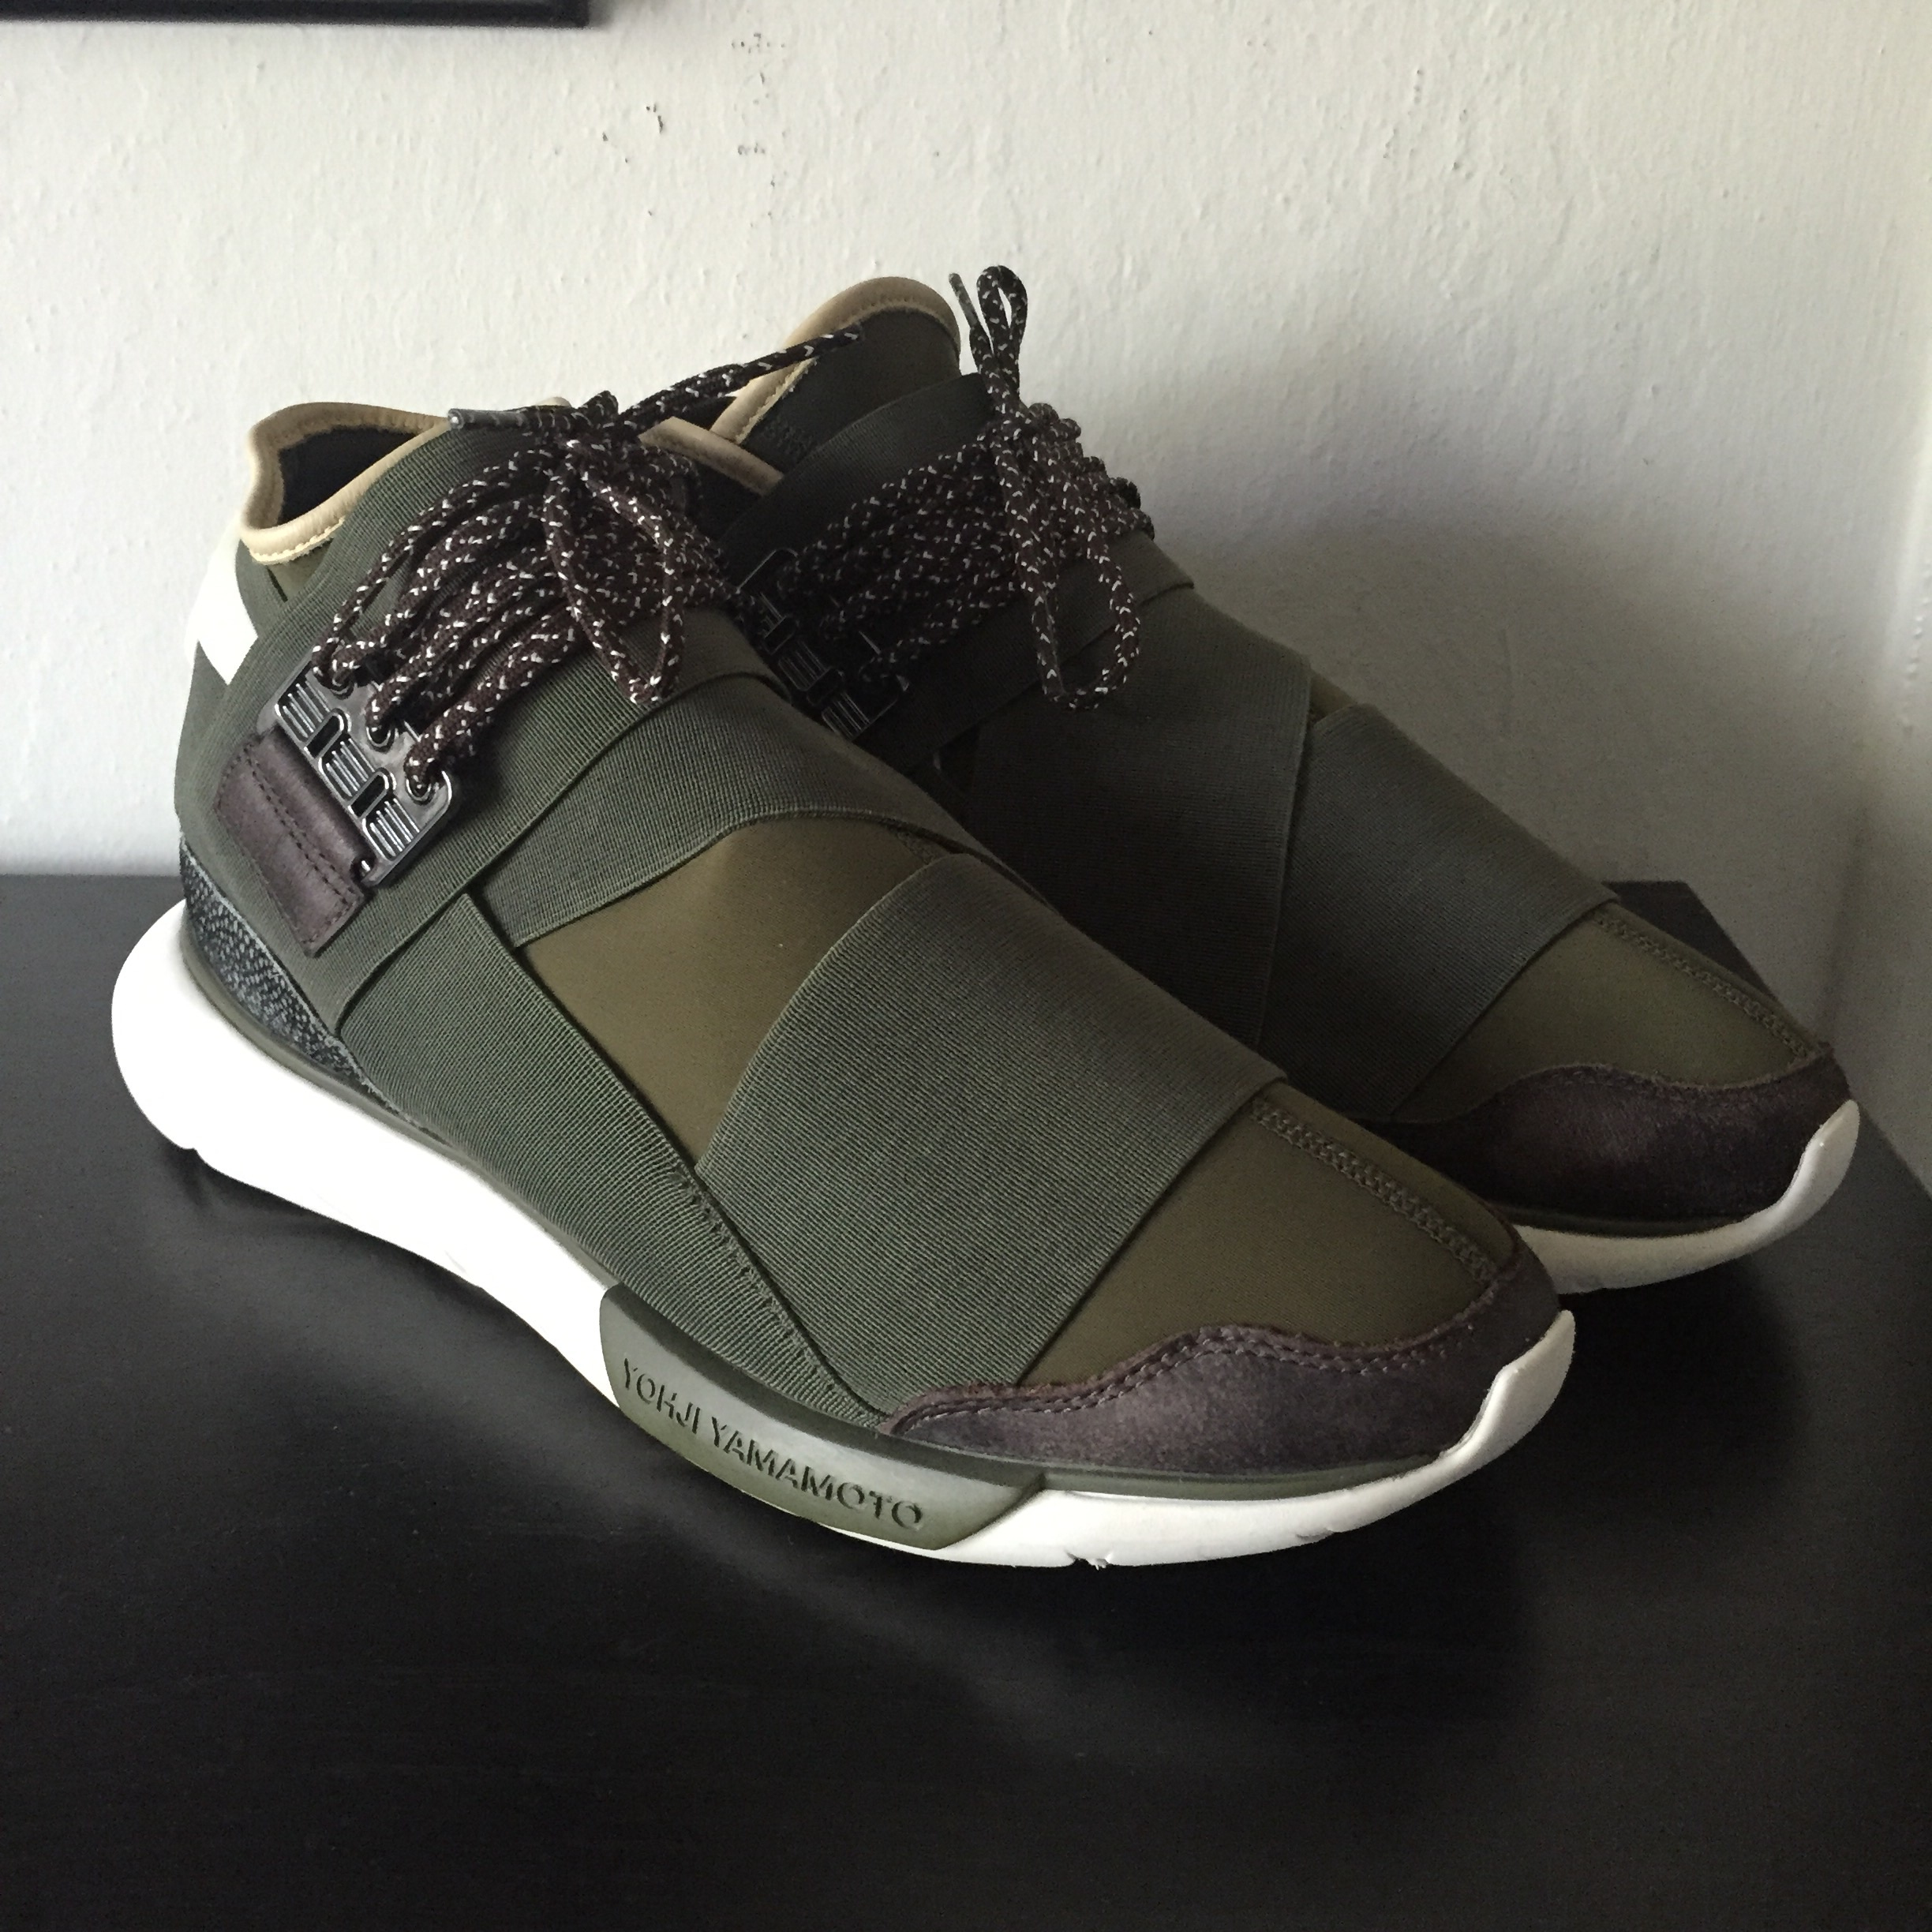 8b1dde775 Y-3 Adidas Qasa High Olive Green Size 9 - Hi-Top Sneakers for Sale ...